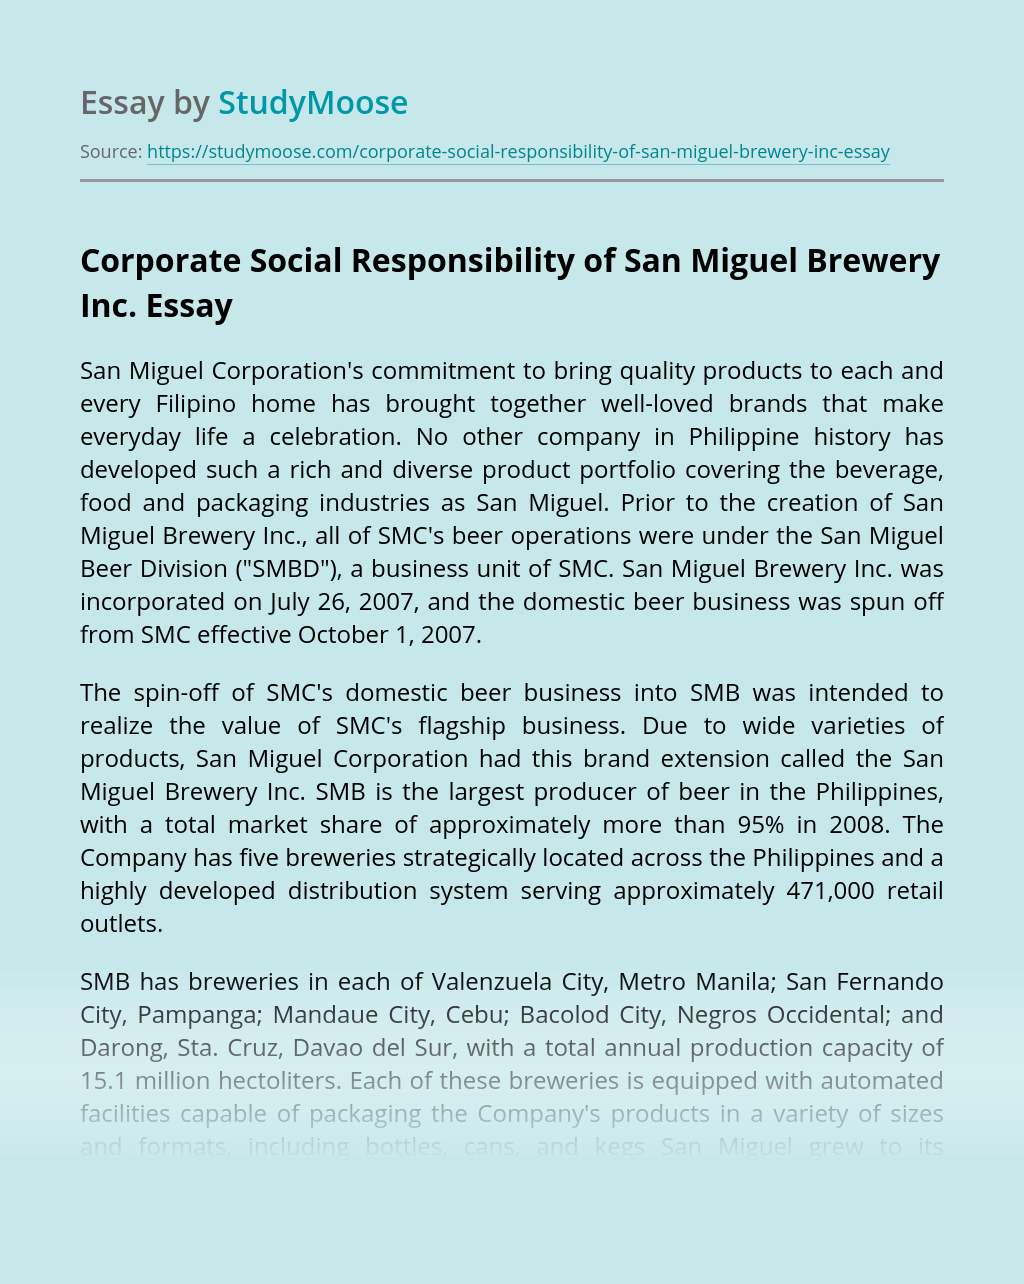 Corporate Social Responsibility of San Miguel Brewery Inc.